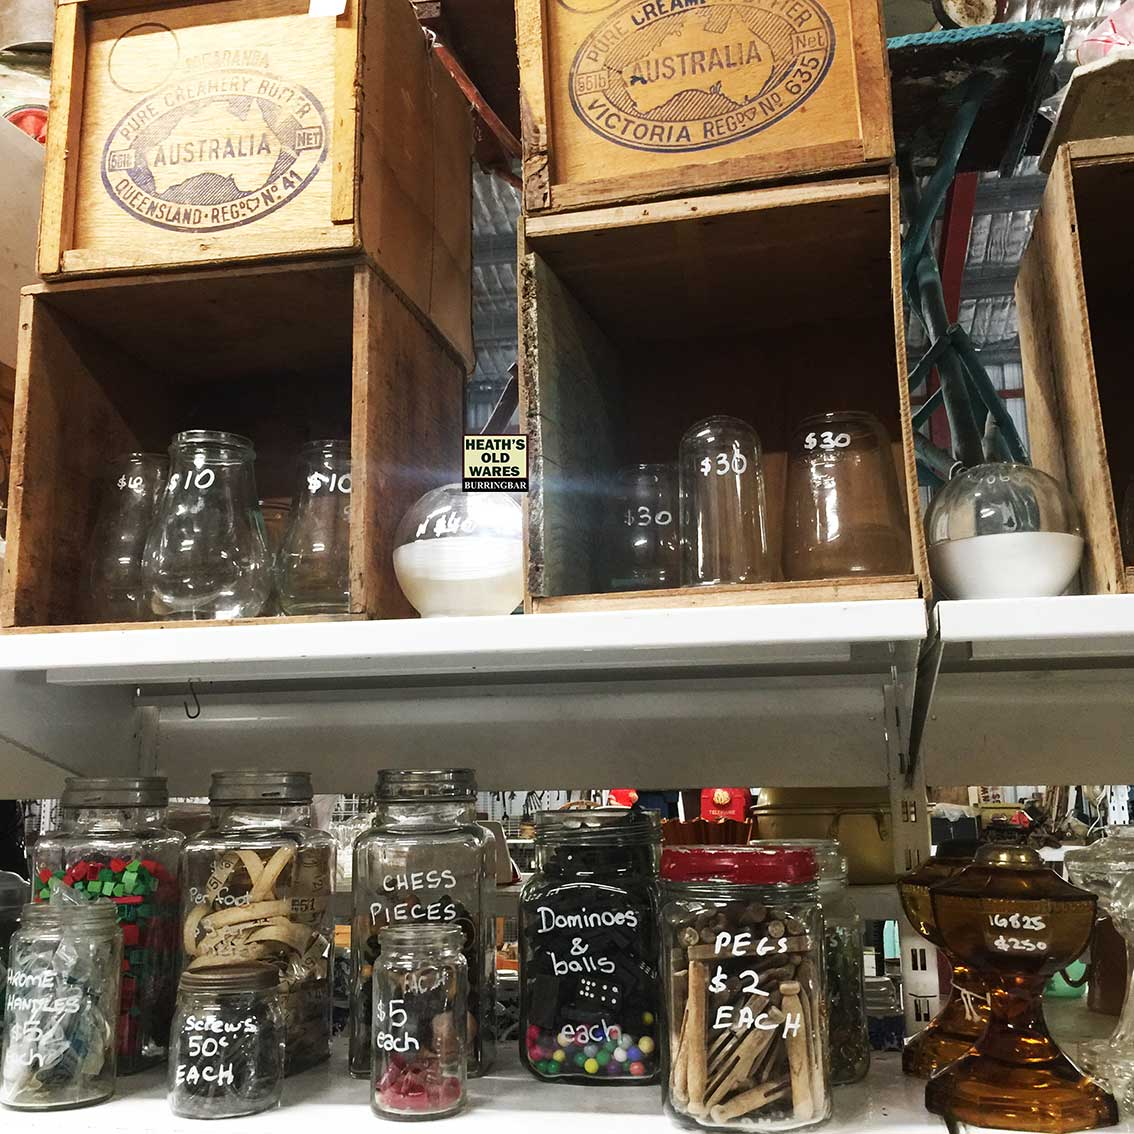 Antique butter boxes, lamp glasses for sale at Heaths Old Wares, Collectables, Antiques & Industrial Antiques, 19-21 Broadway, Burringbar NSW 2483 Ph 0266771181 open 7 days